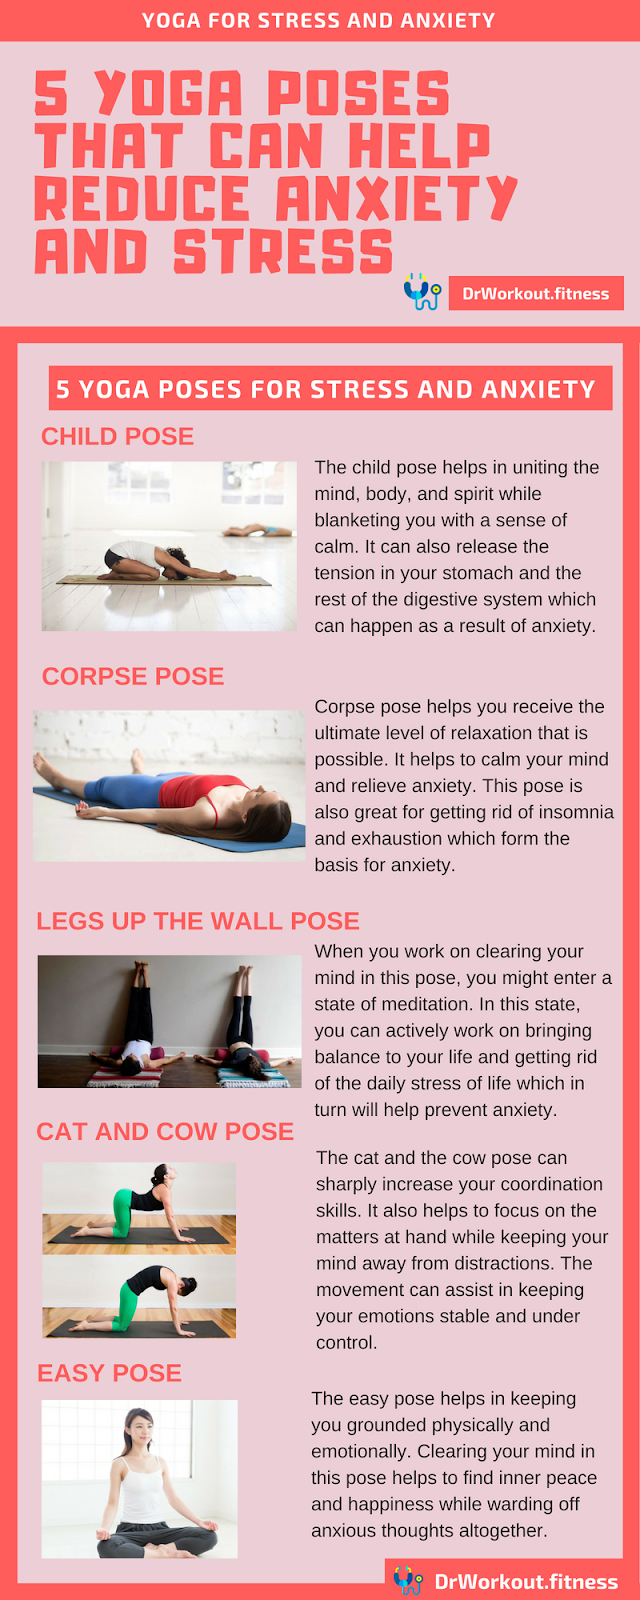 Yoga poses for stress and anxiety